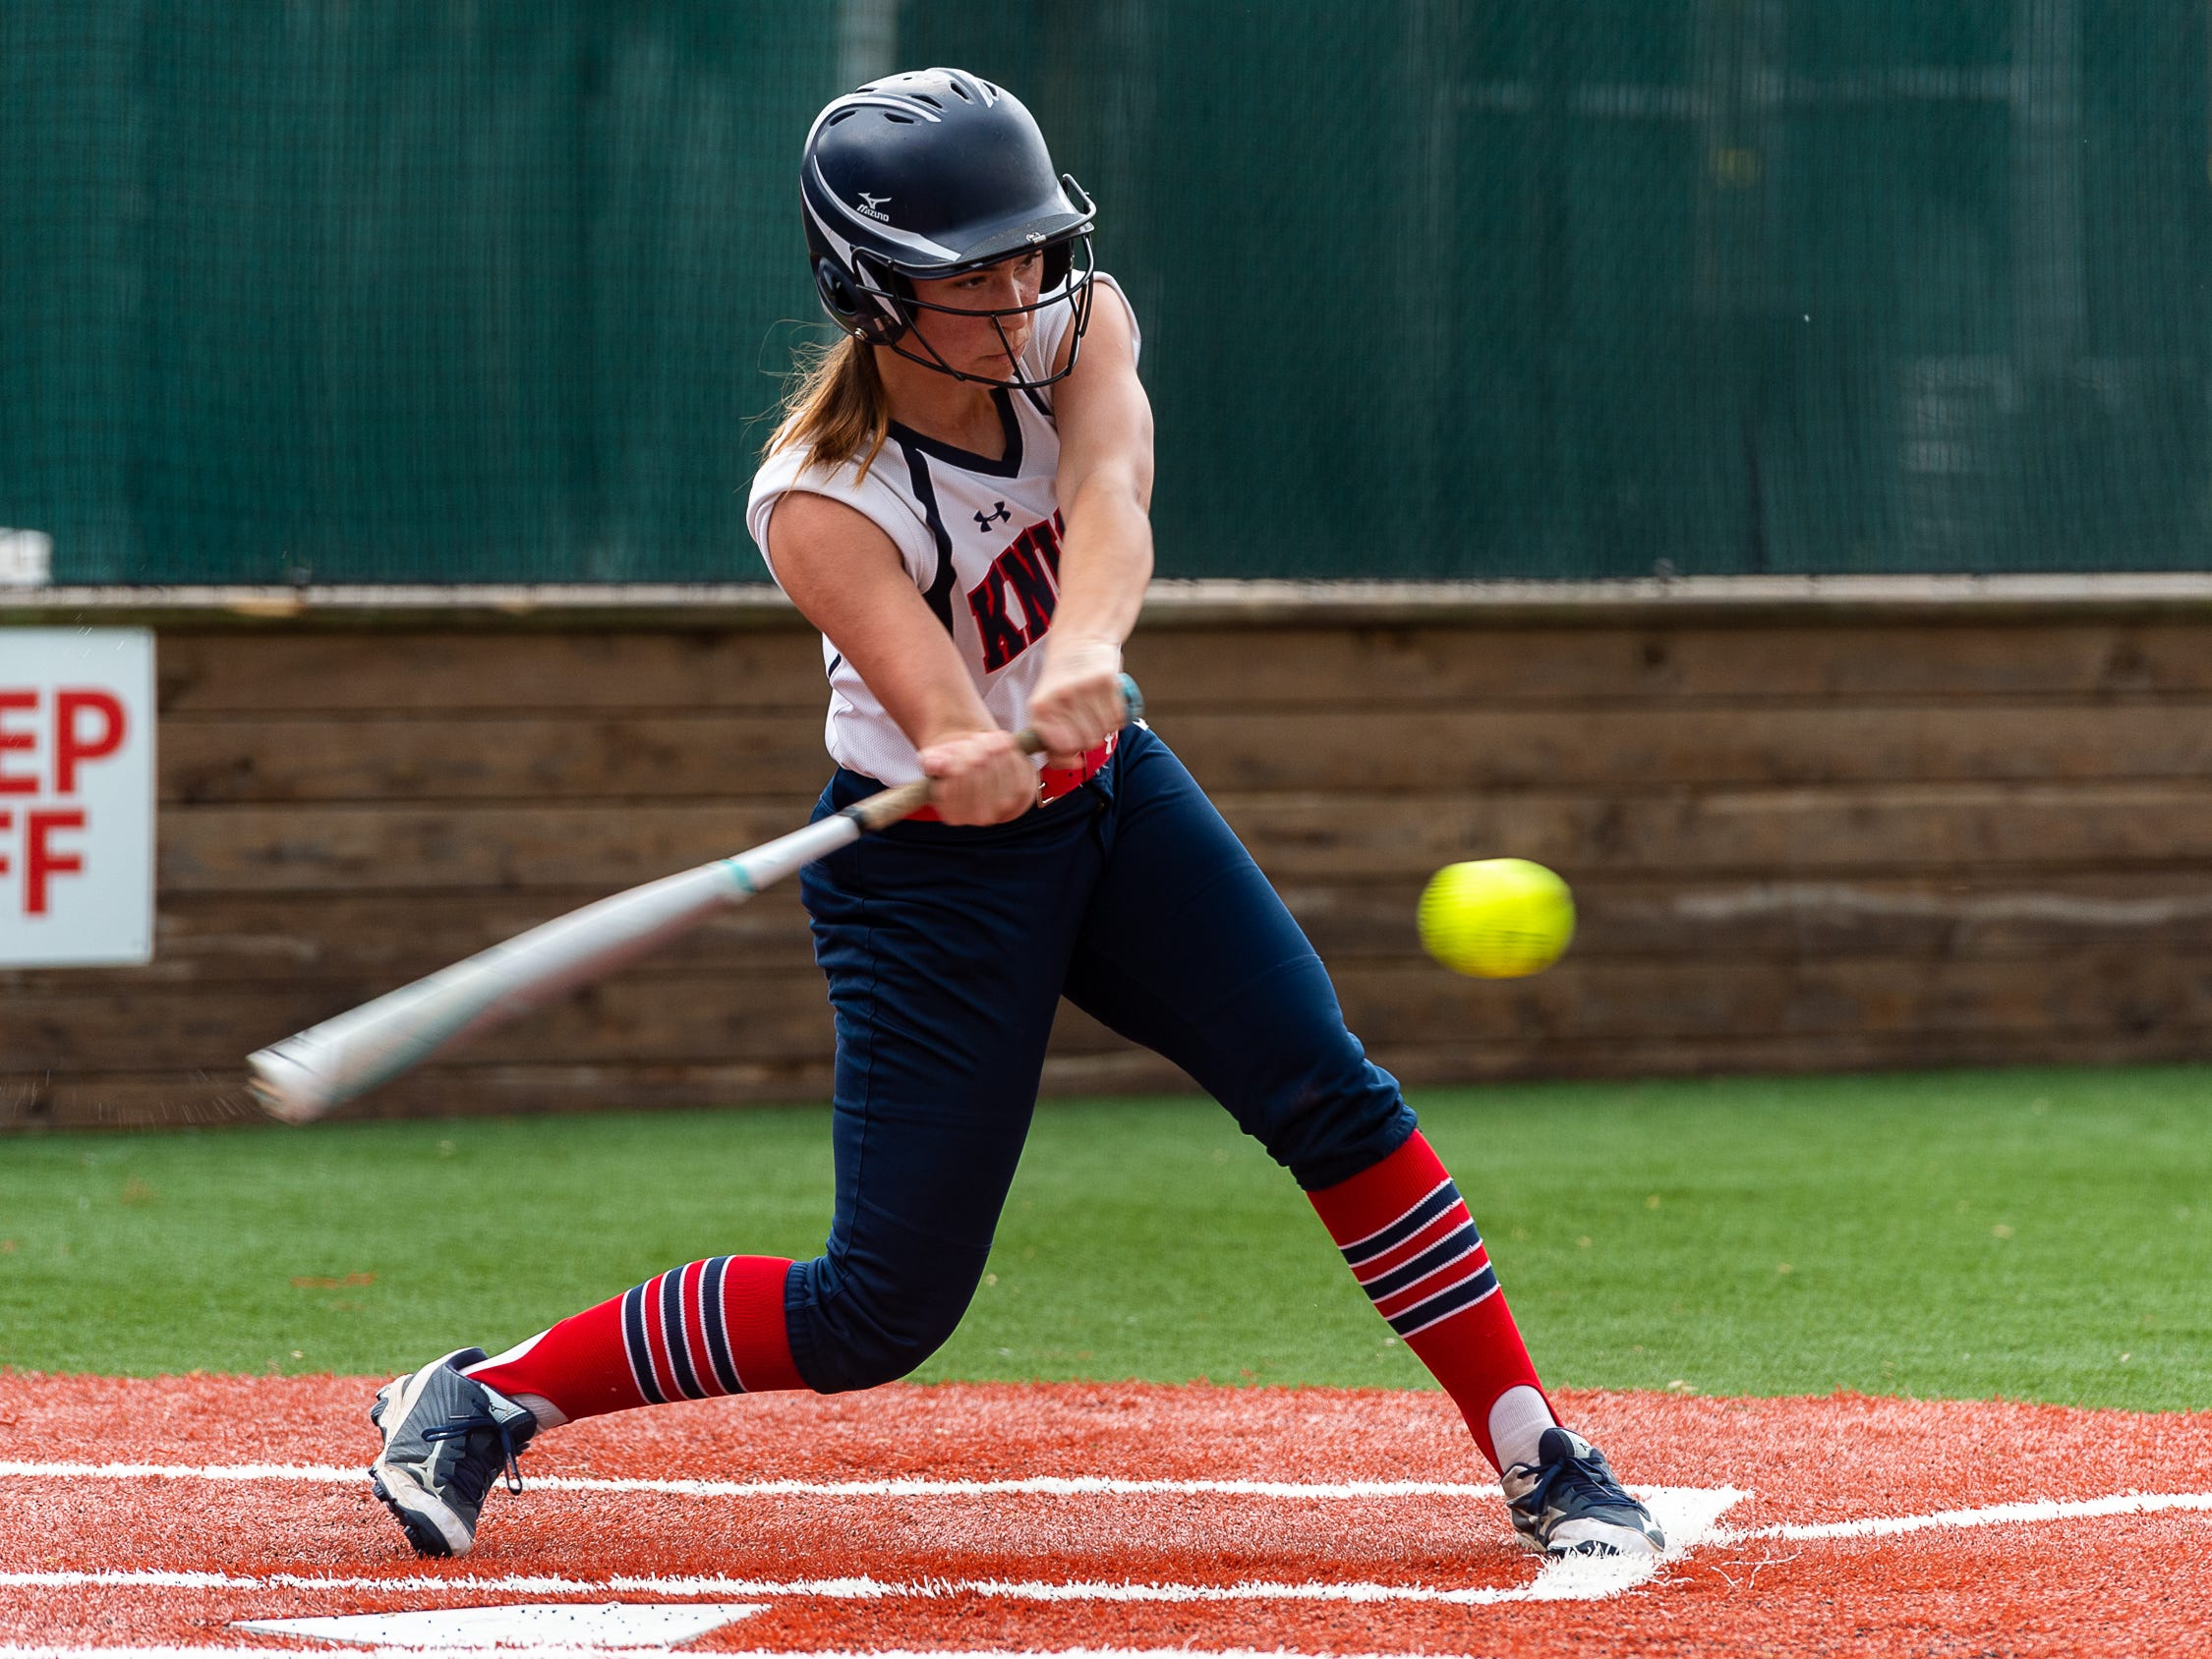 Sarah Diaz at the plate as  Lafayette Christian Academy softball takes on University Academy in the forst round of the LHSAA playoffs. Friday, April 12, 2019.